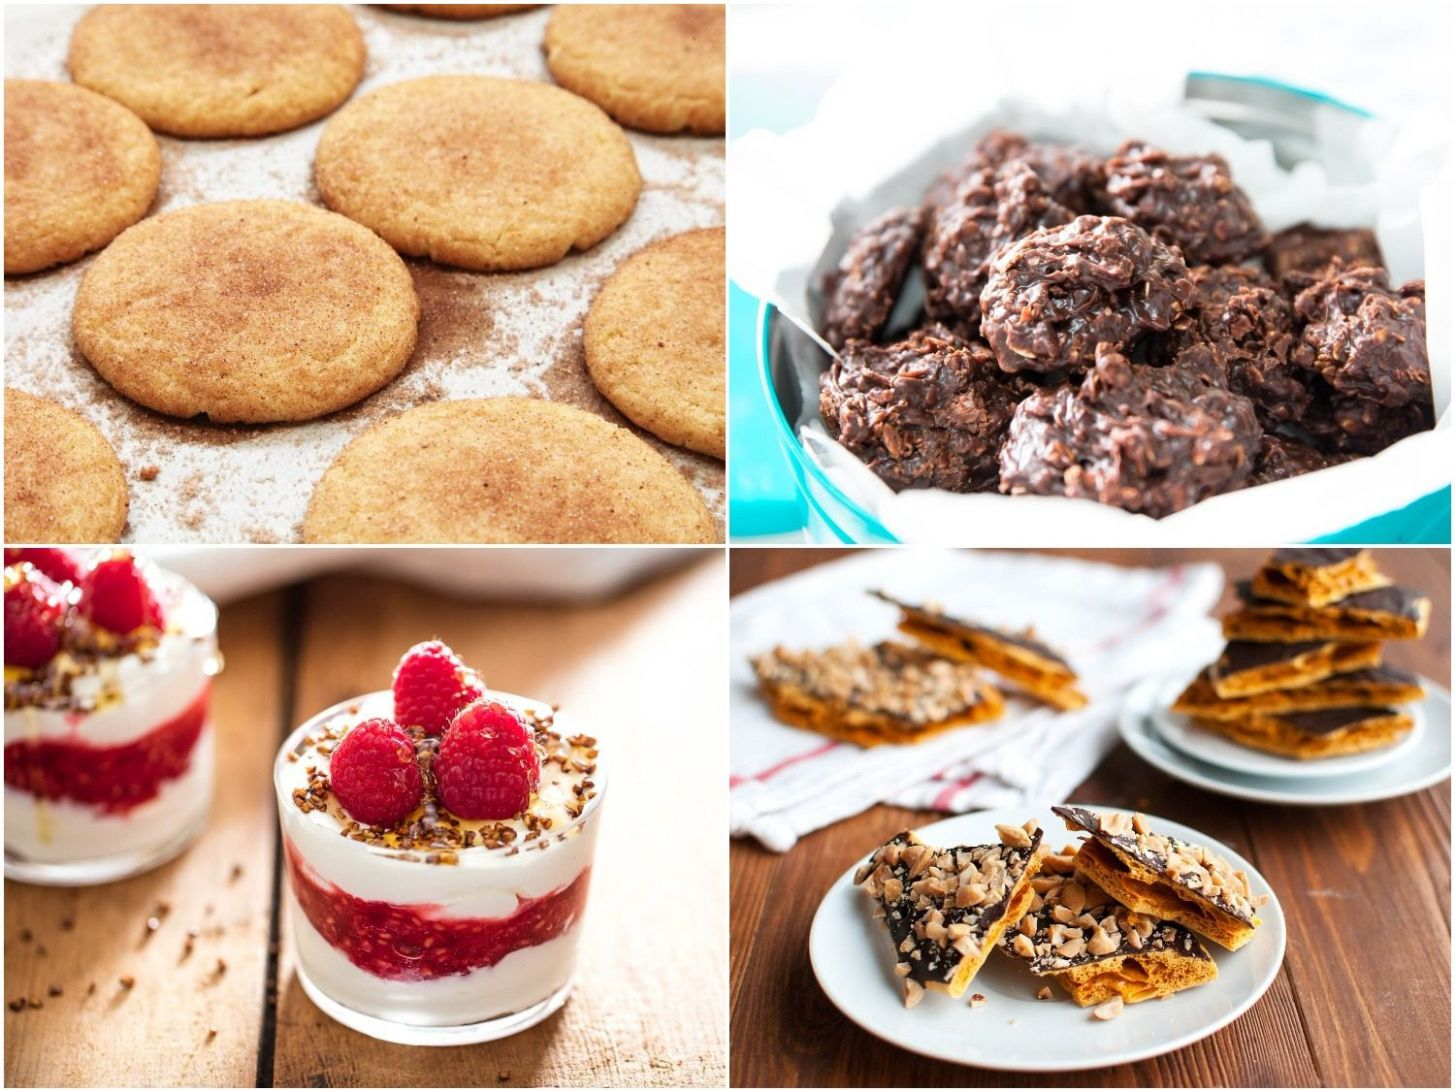 10 Quick and Easy Dessert Recipes | Serious Eats